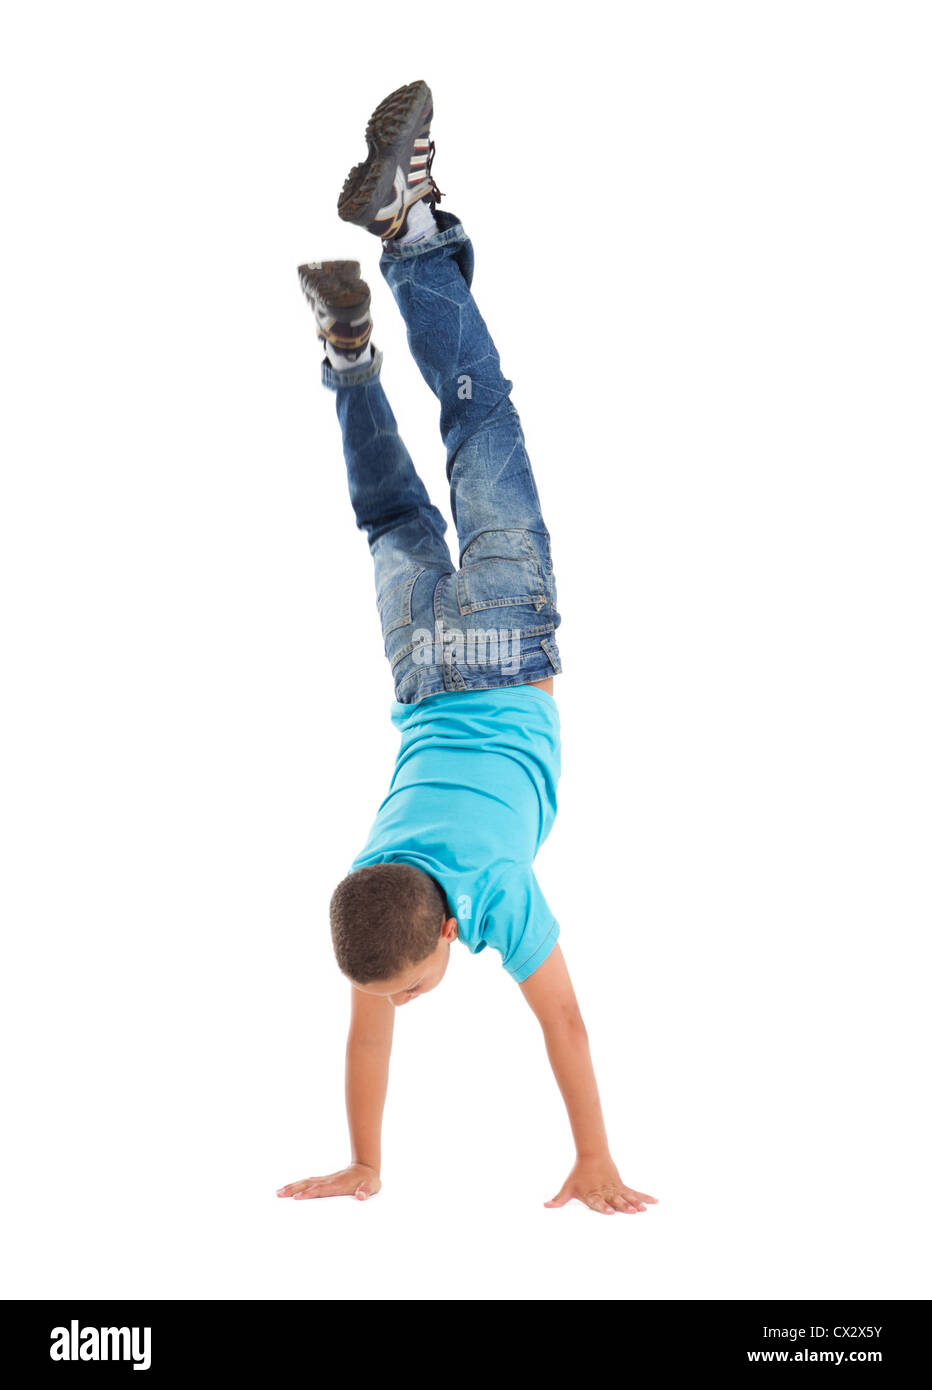 young boy handstand - Stock Image